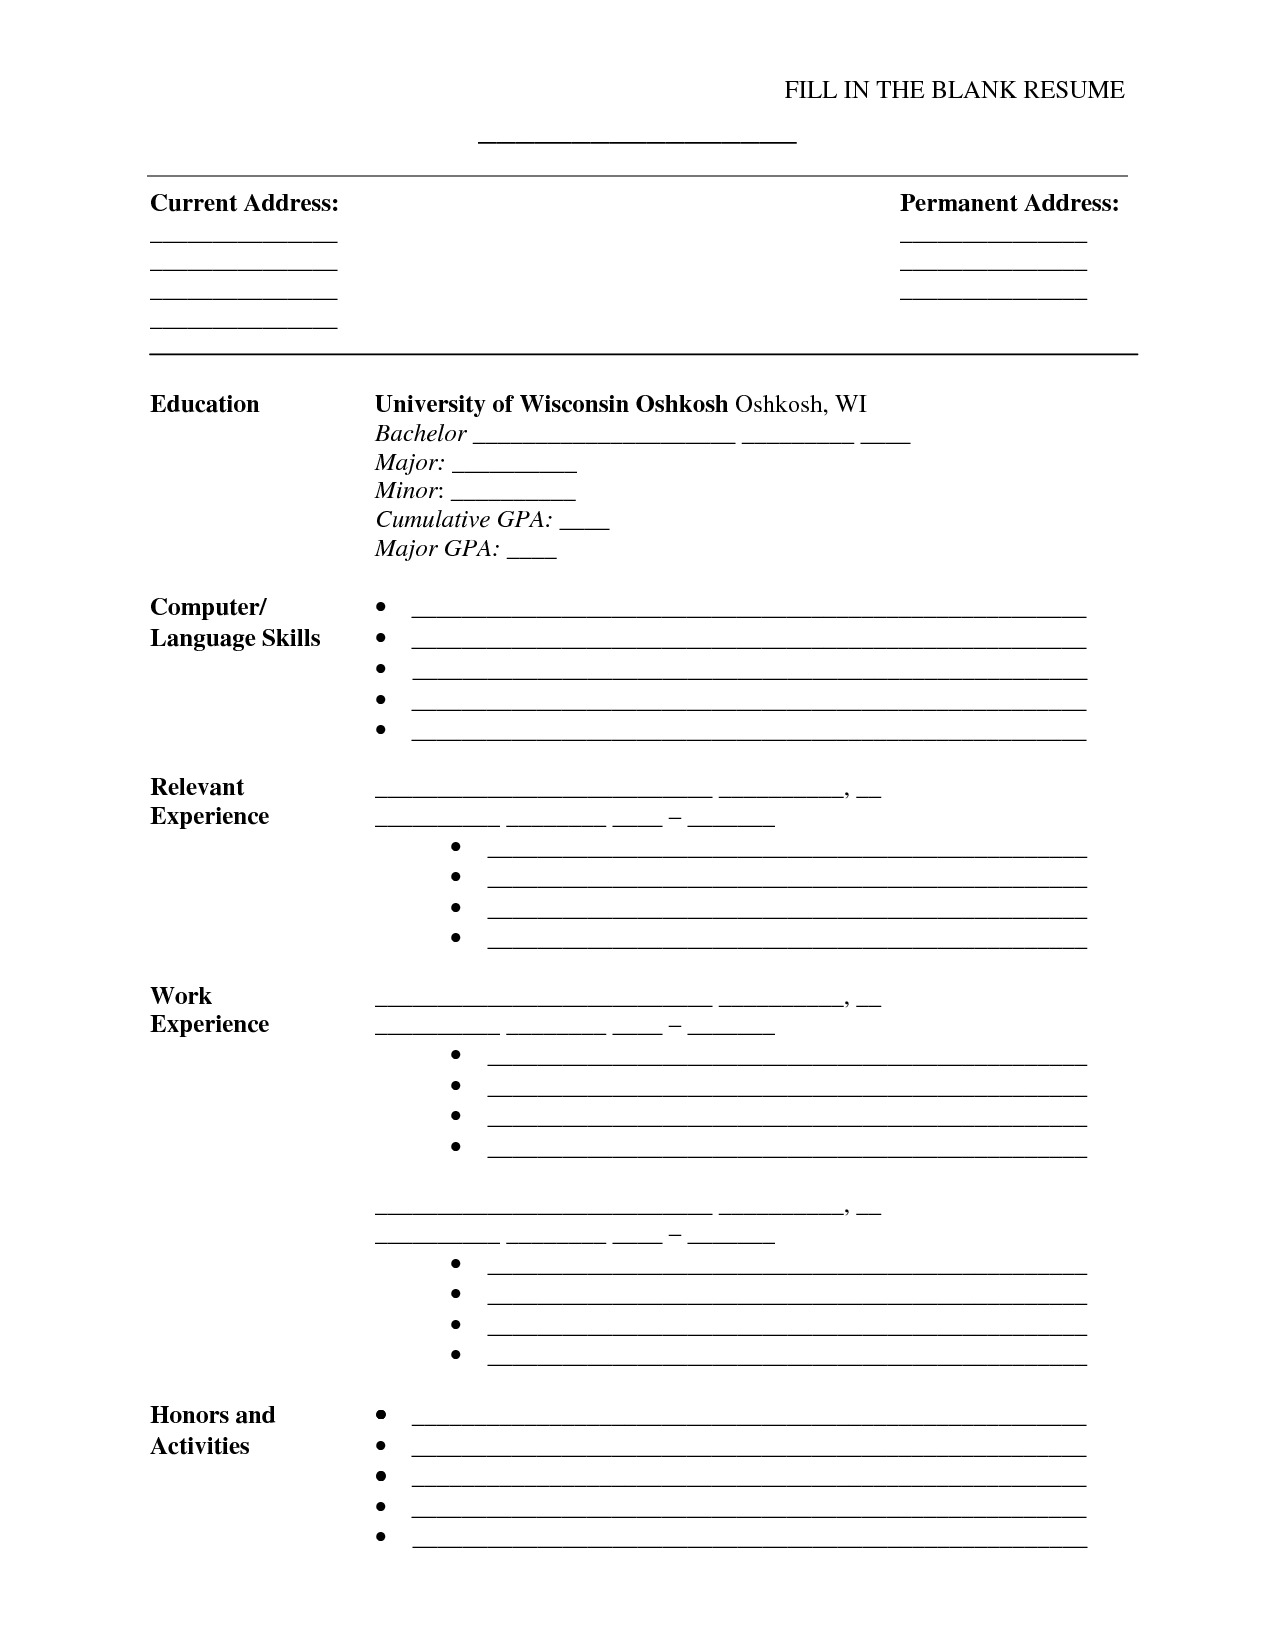 Free Fill In Resume Template Fill In The Blank Resume Pdf  Httpwww.resumecareerfill .